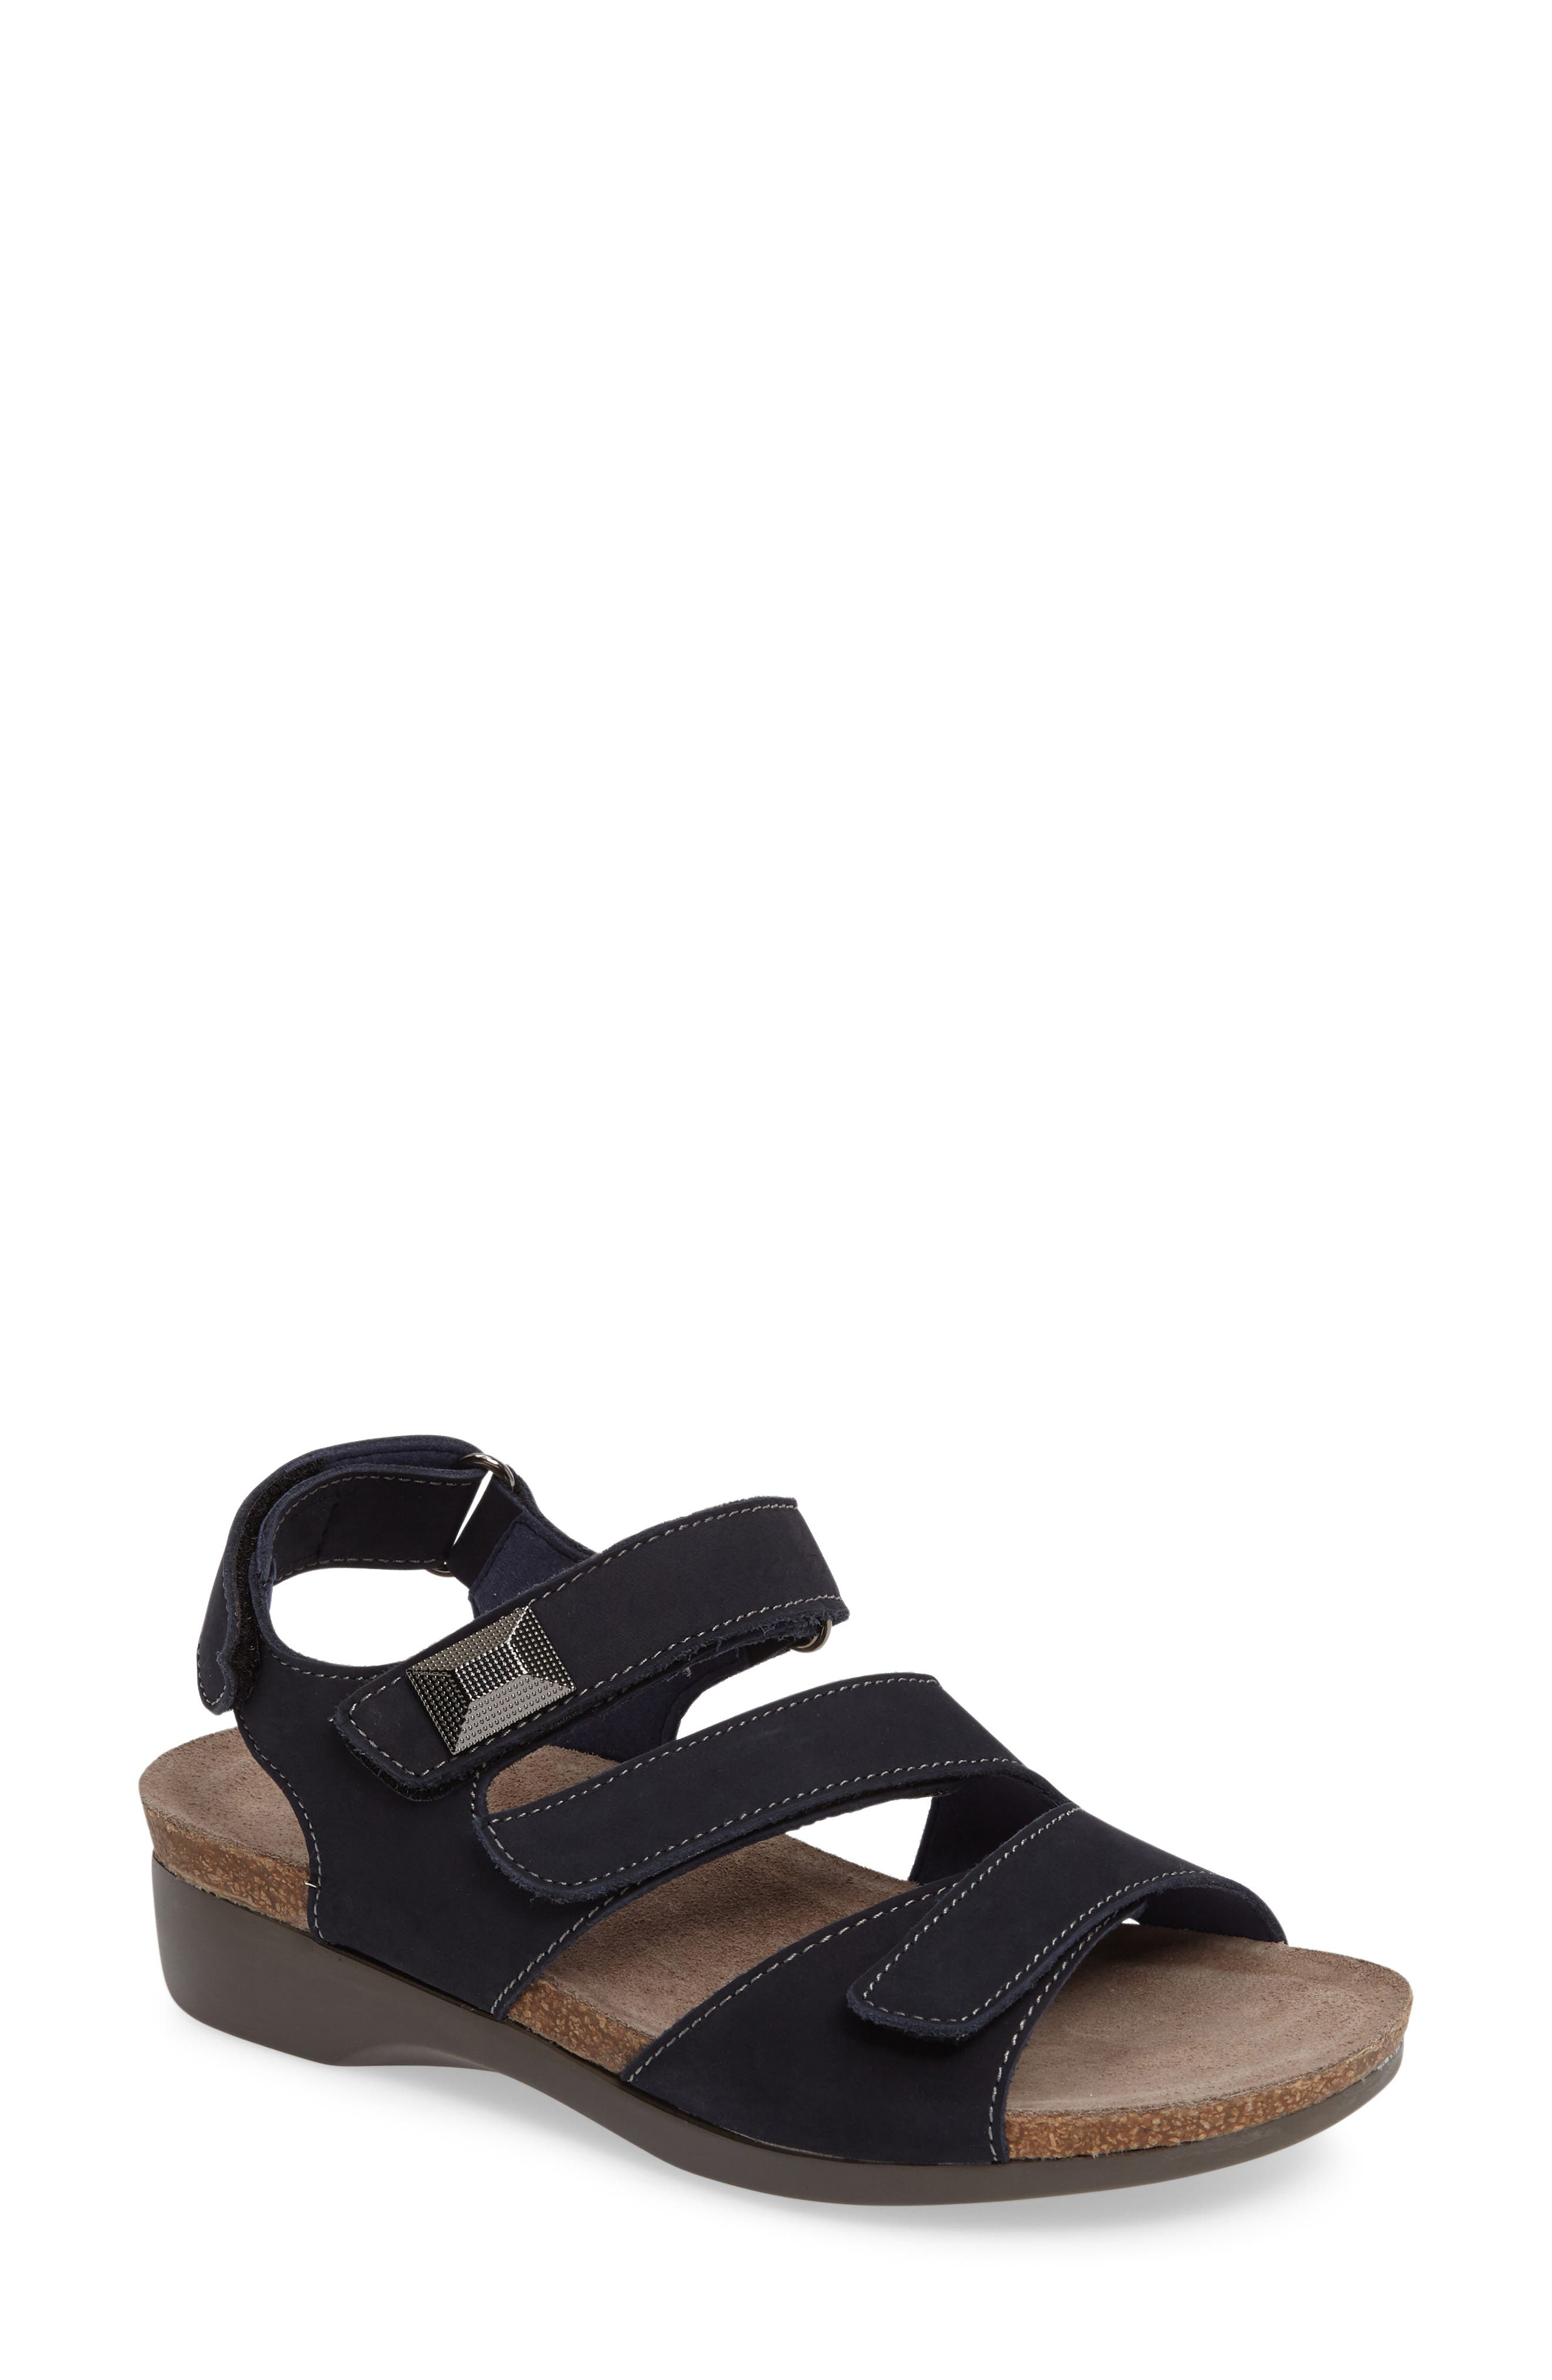 Alternate Image 1 Selected - Munro Antila Sandal (Women)